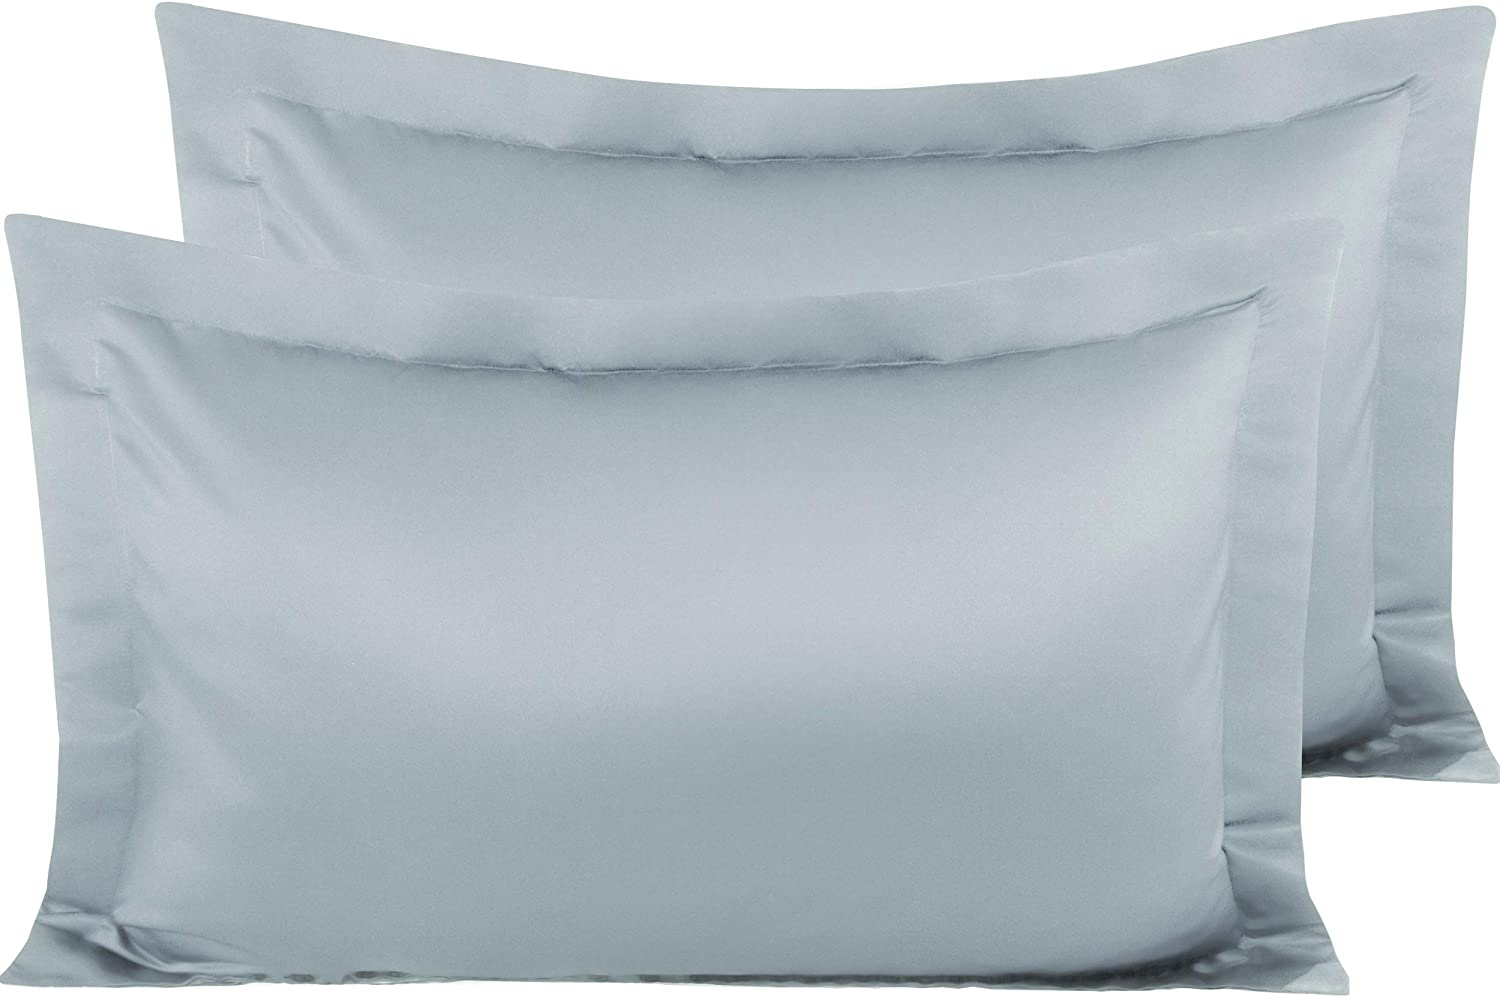 NTBAY Satin Pillow Shams, 2 Pack Super Soft and Luxury Pillow Cases, King Size, Grey